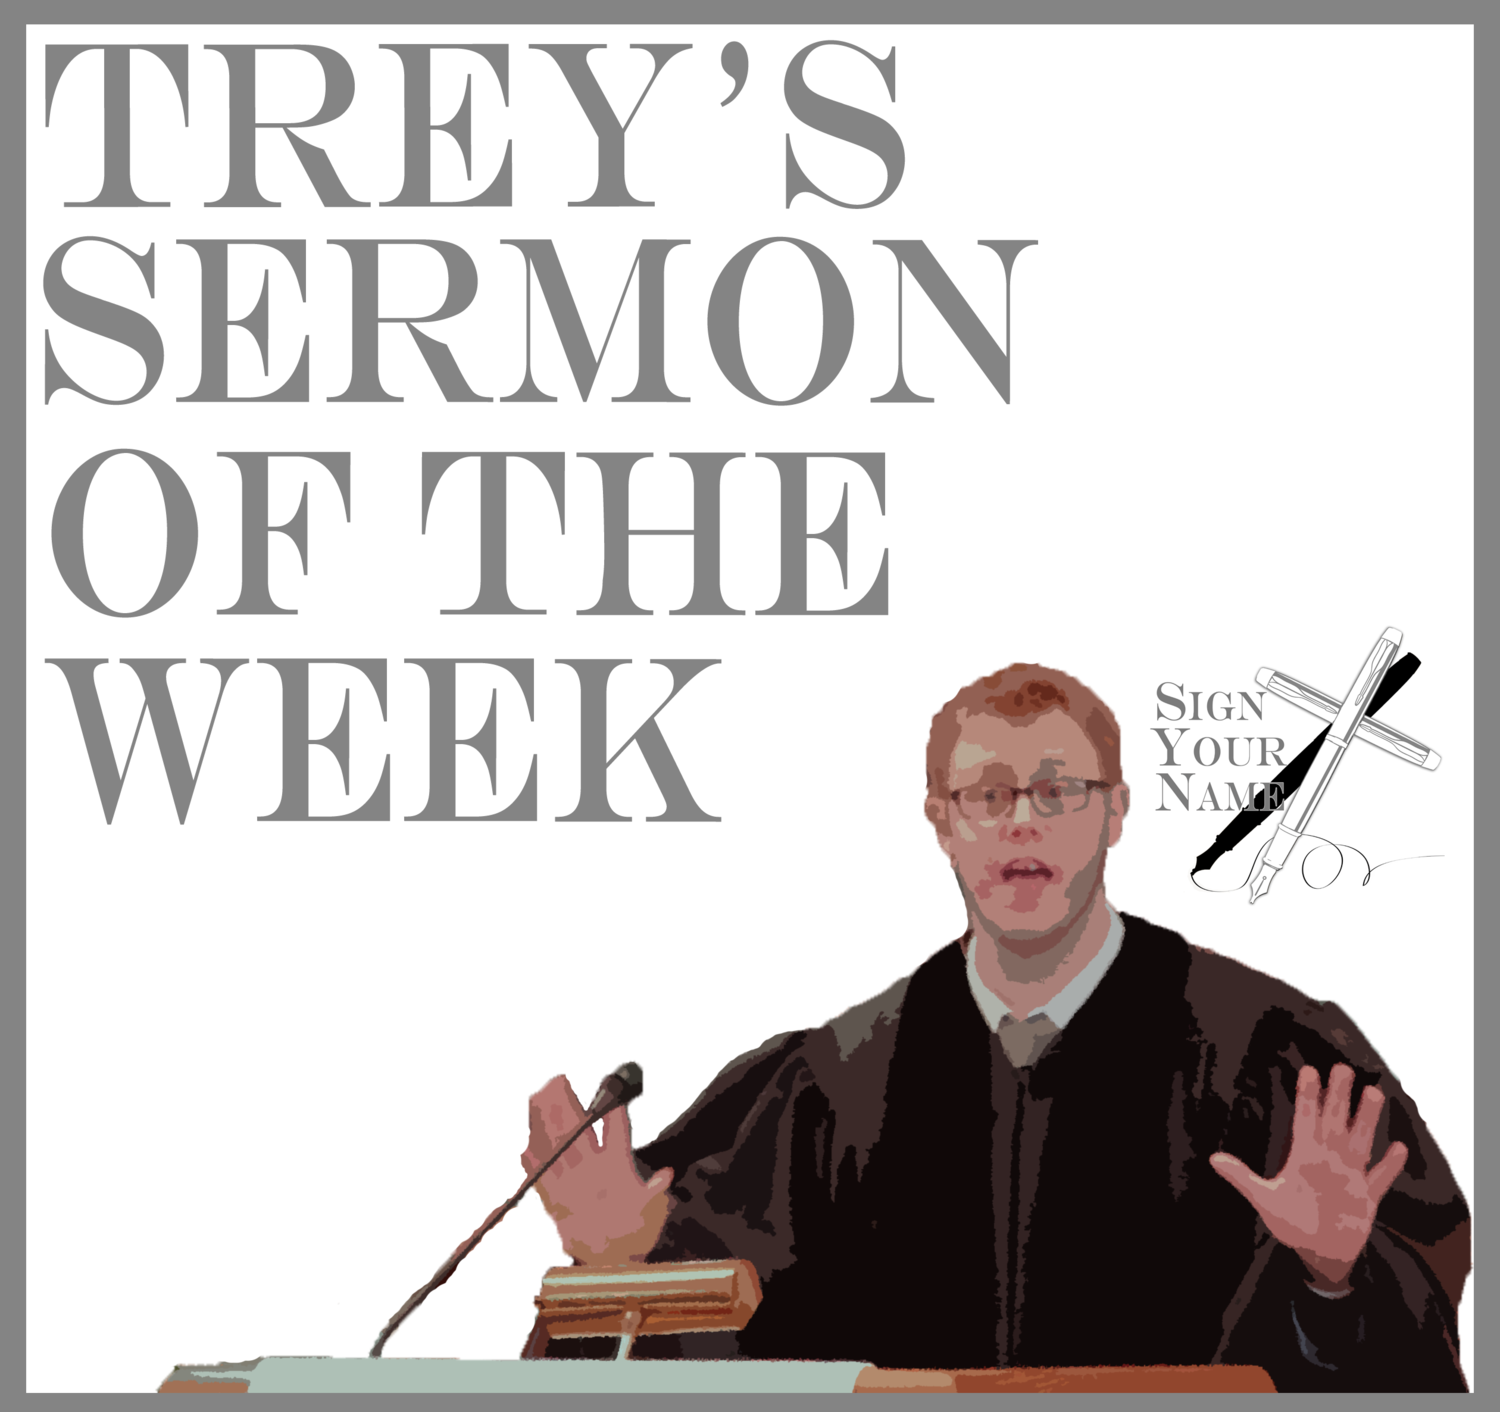 Trey's Sermon of the Week - The Sign Your Name Project